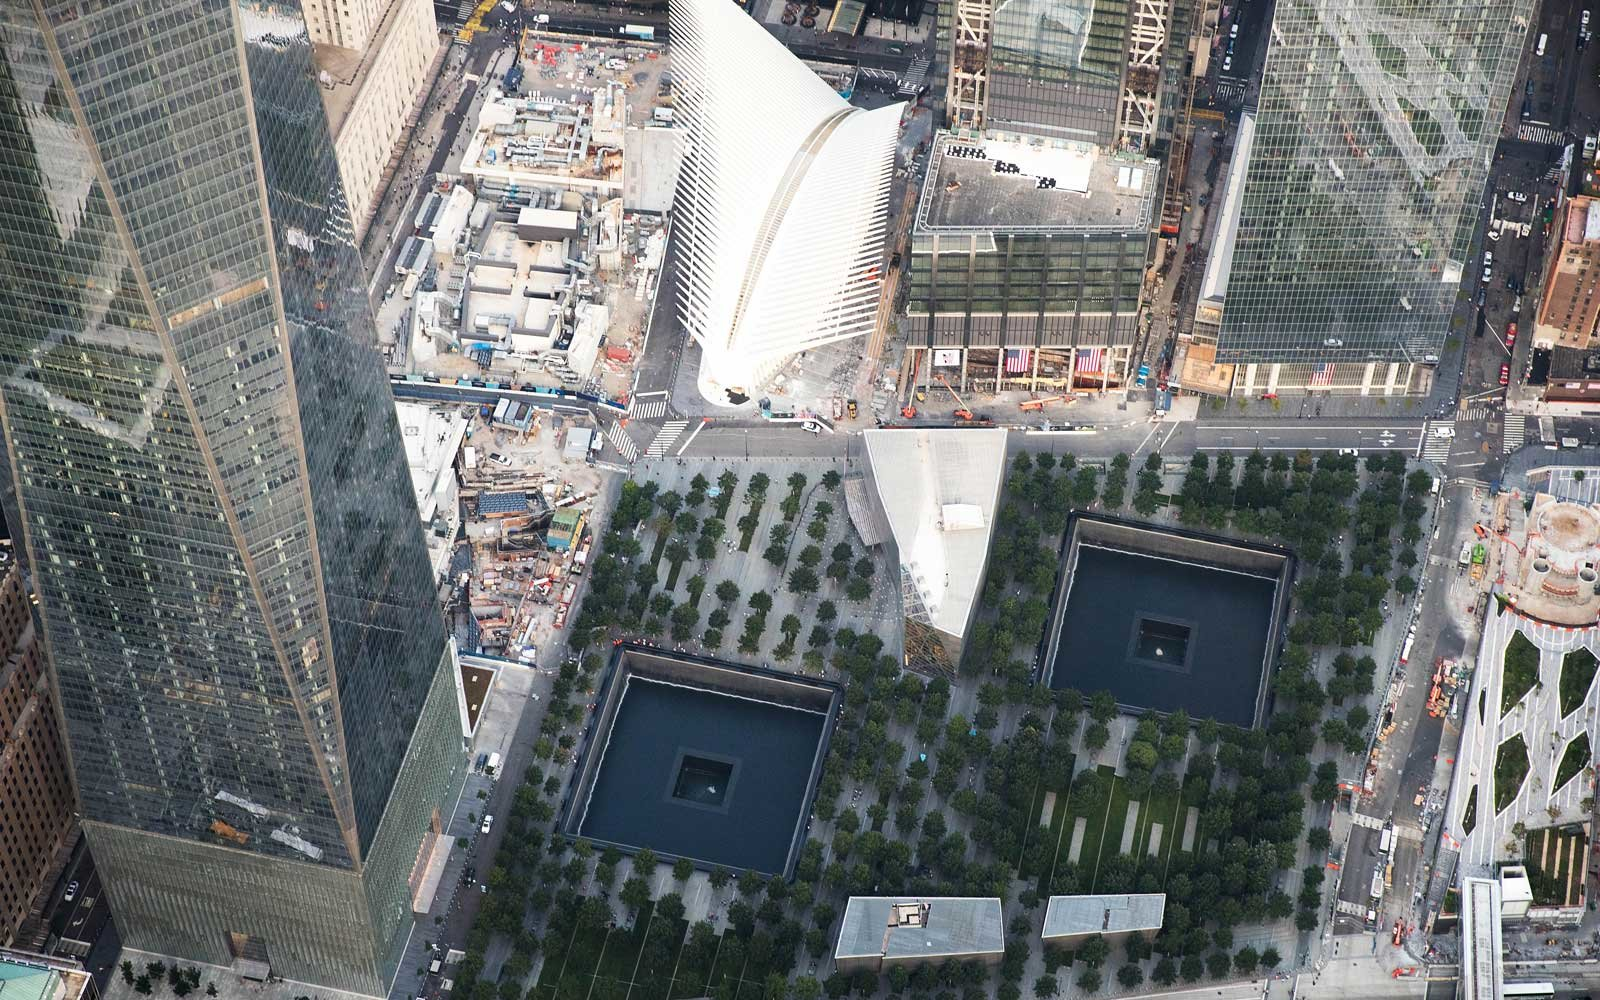 Lower Manhattan Aerial View 9/11 Memorial